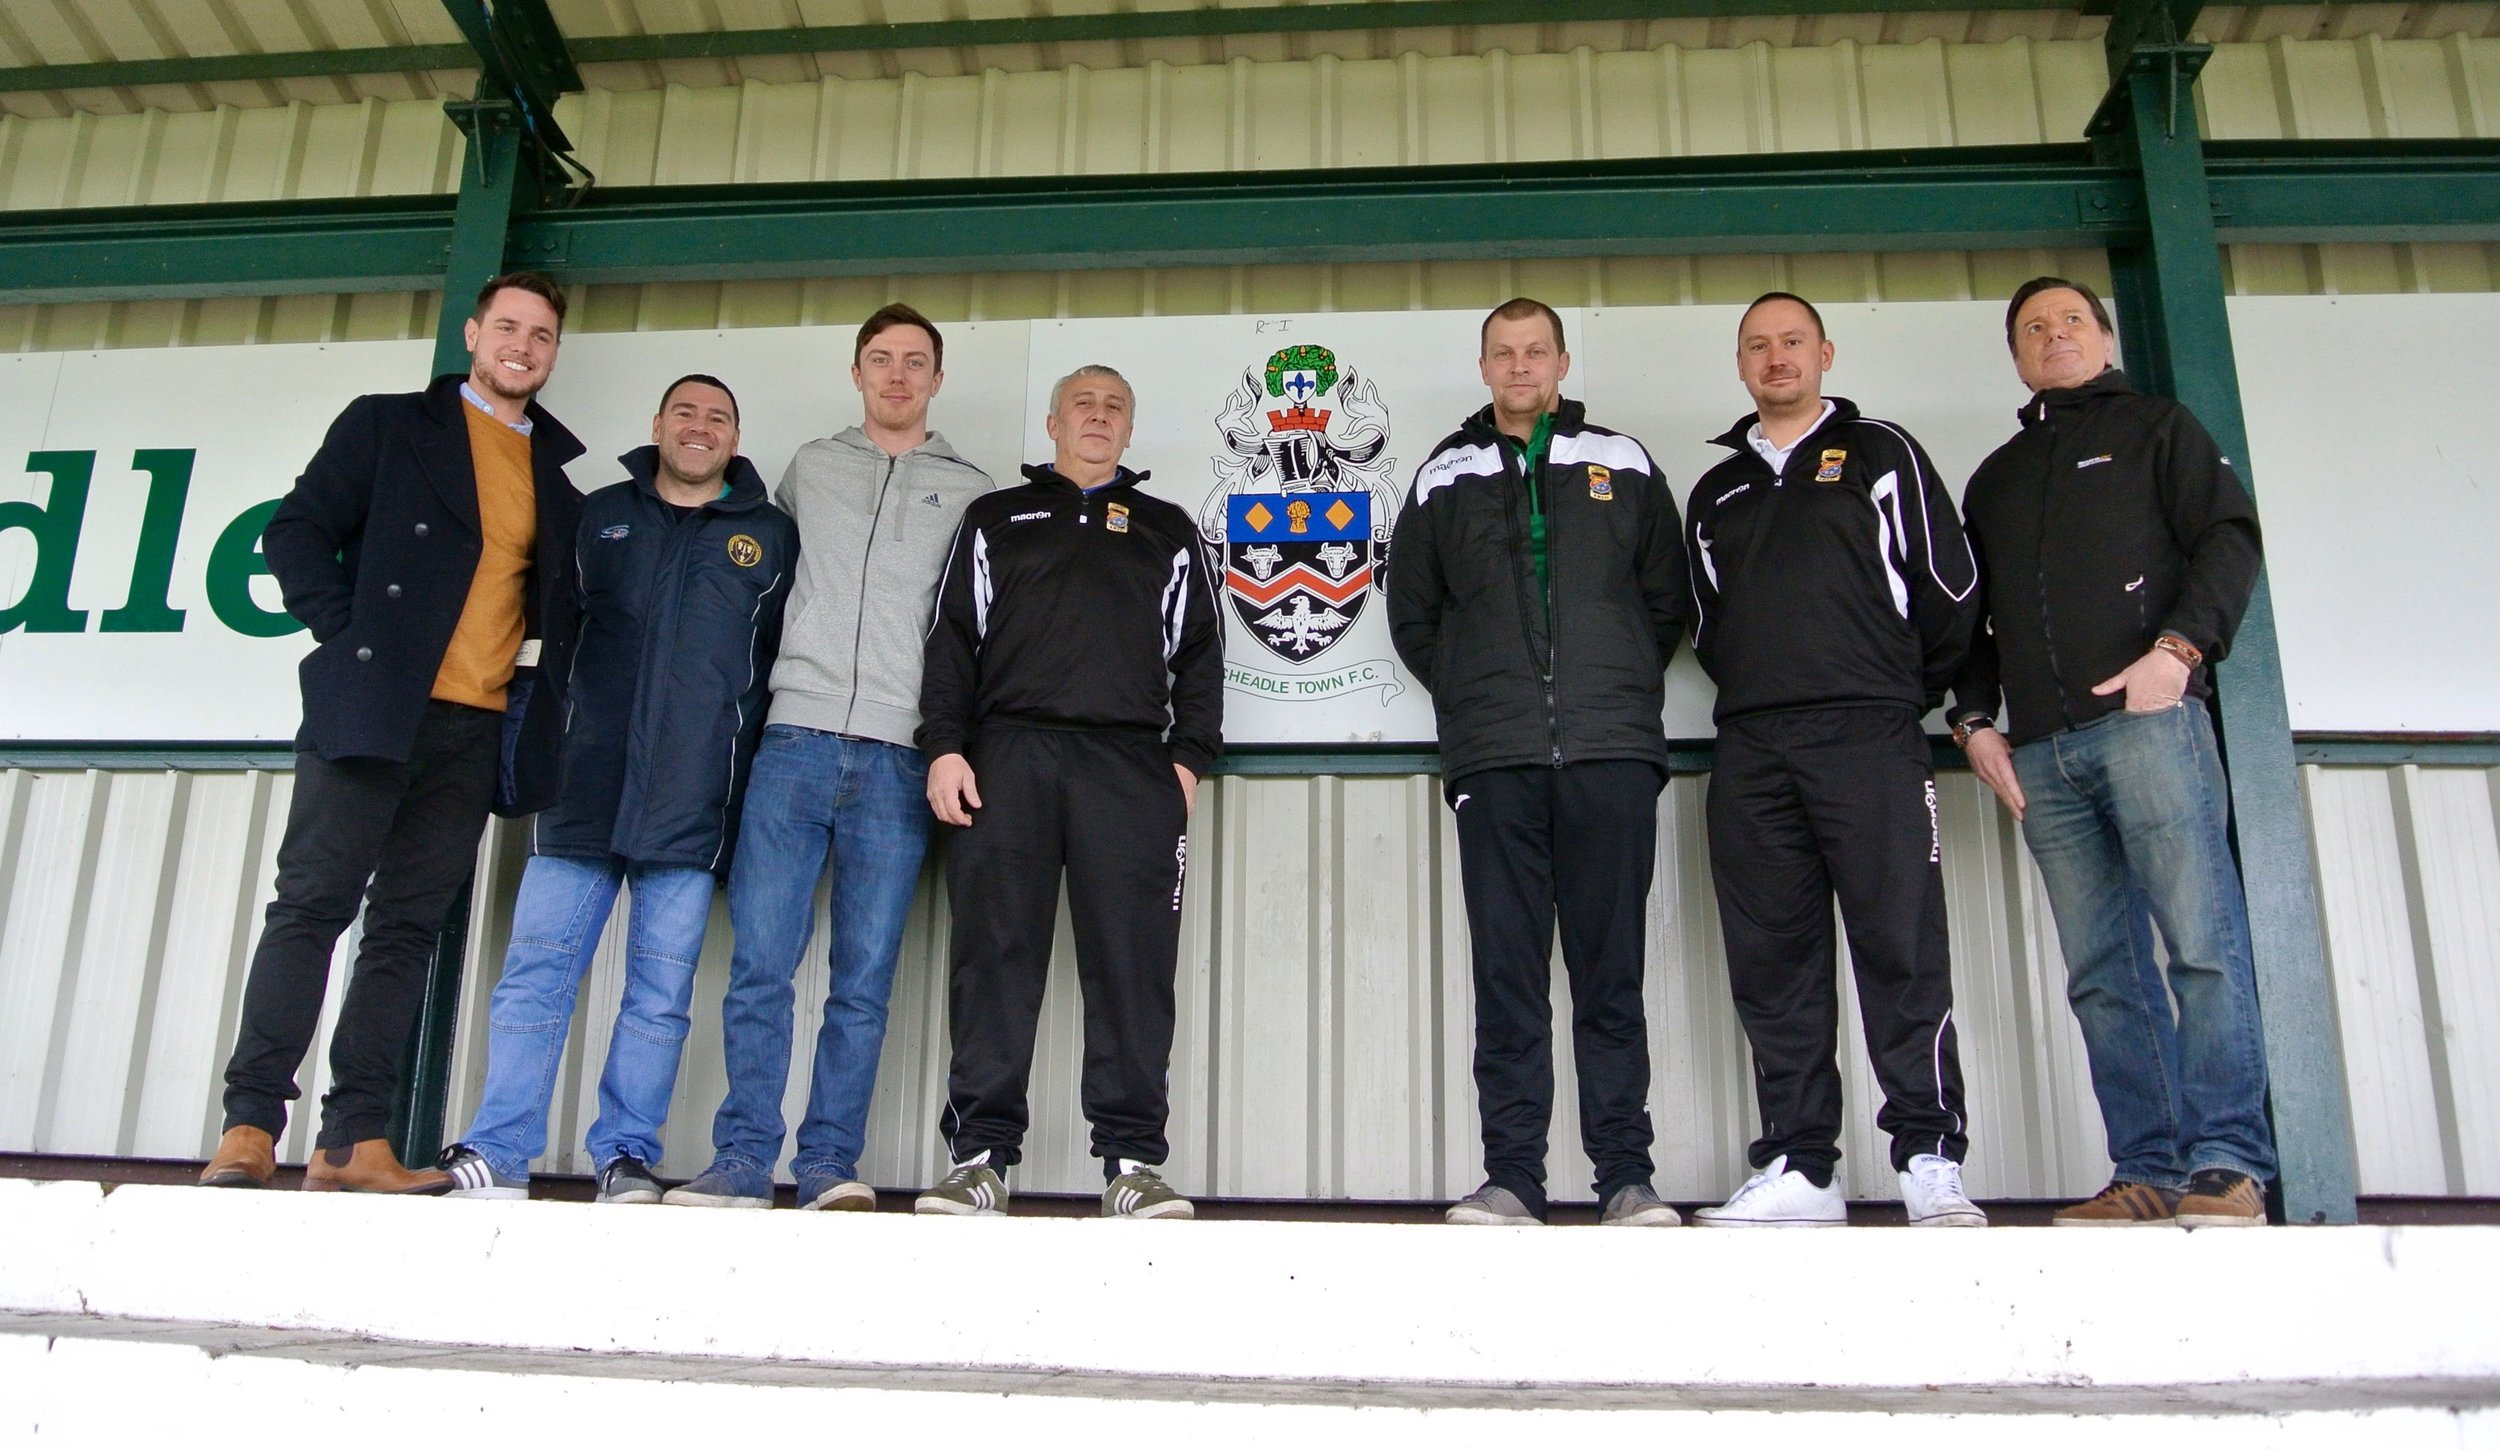 Craig (far left) with our current management team